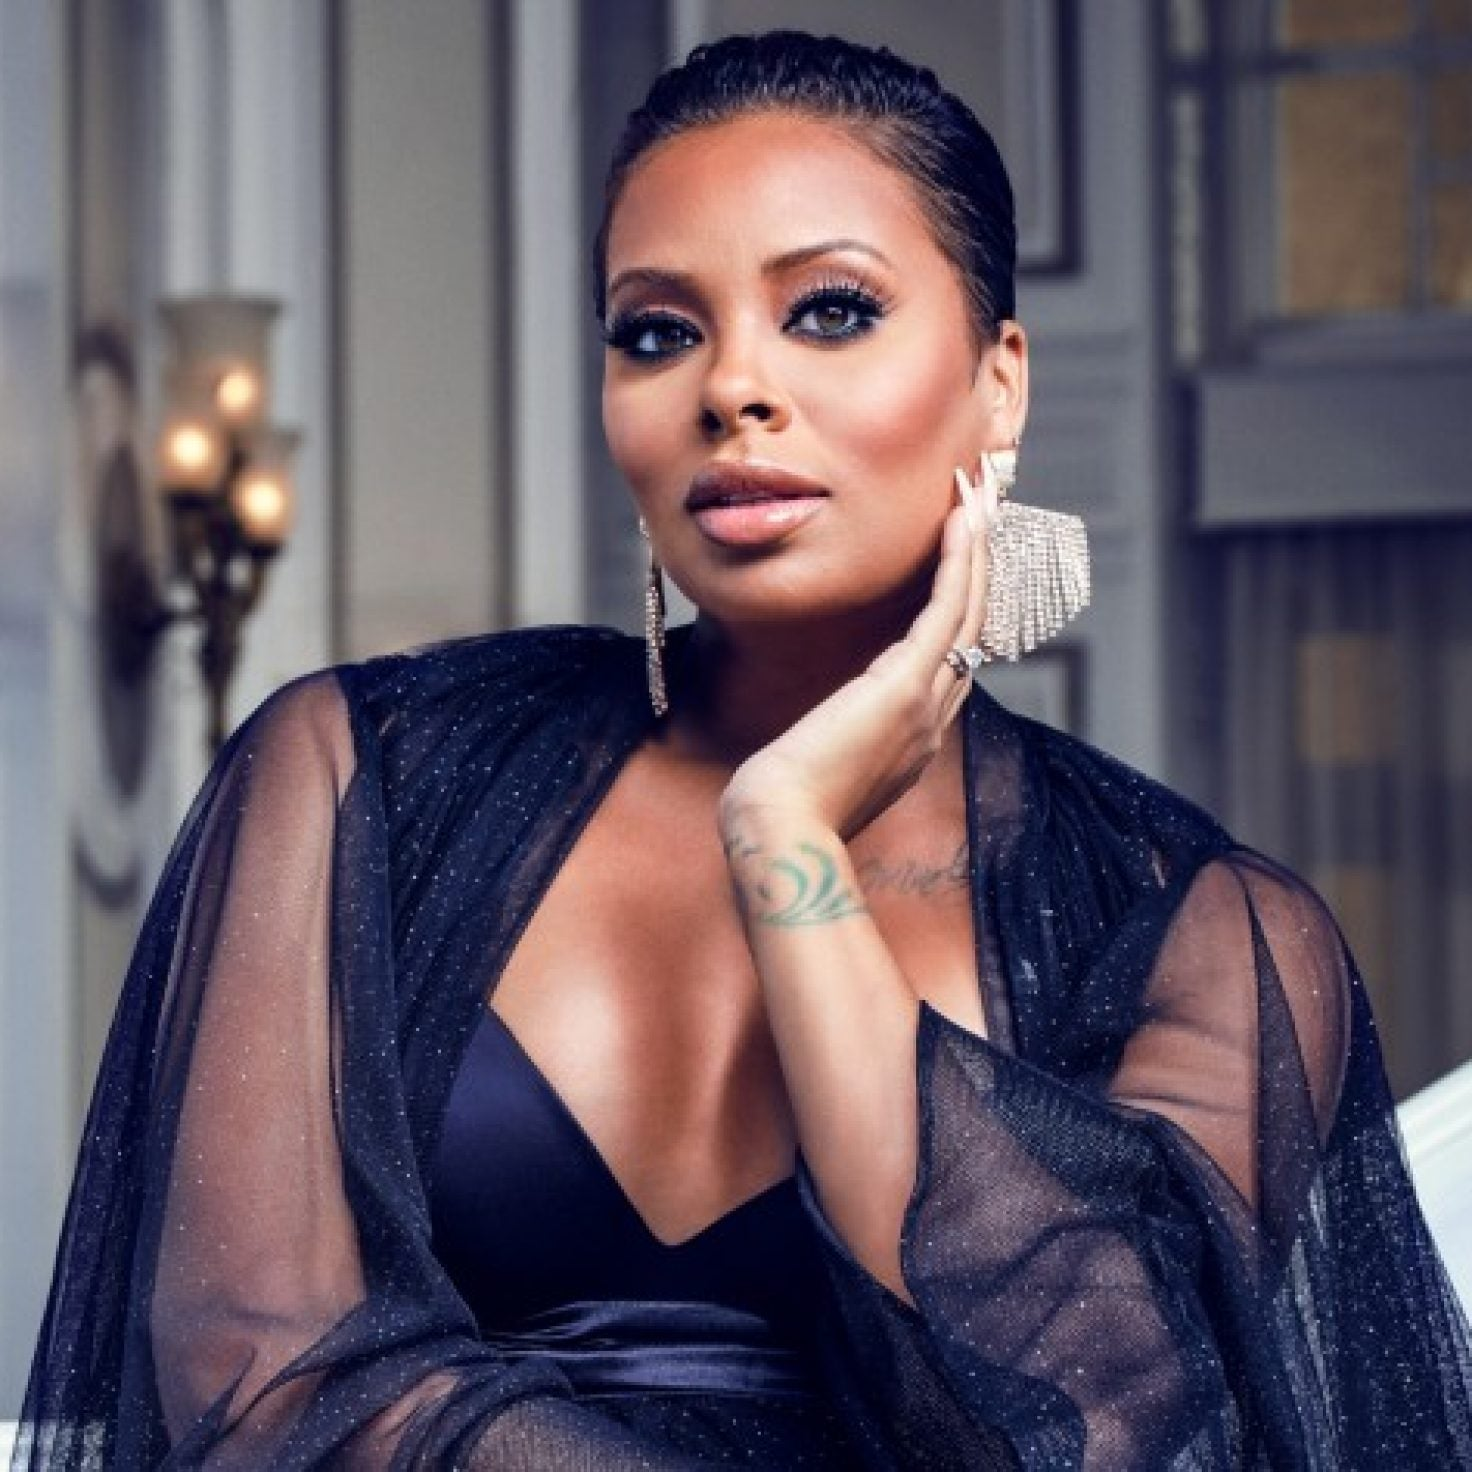 Eva Marcille Took Blond Hair To The Next Level At Black Women In Hollywood